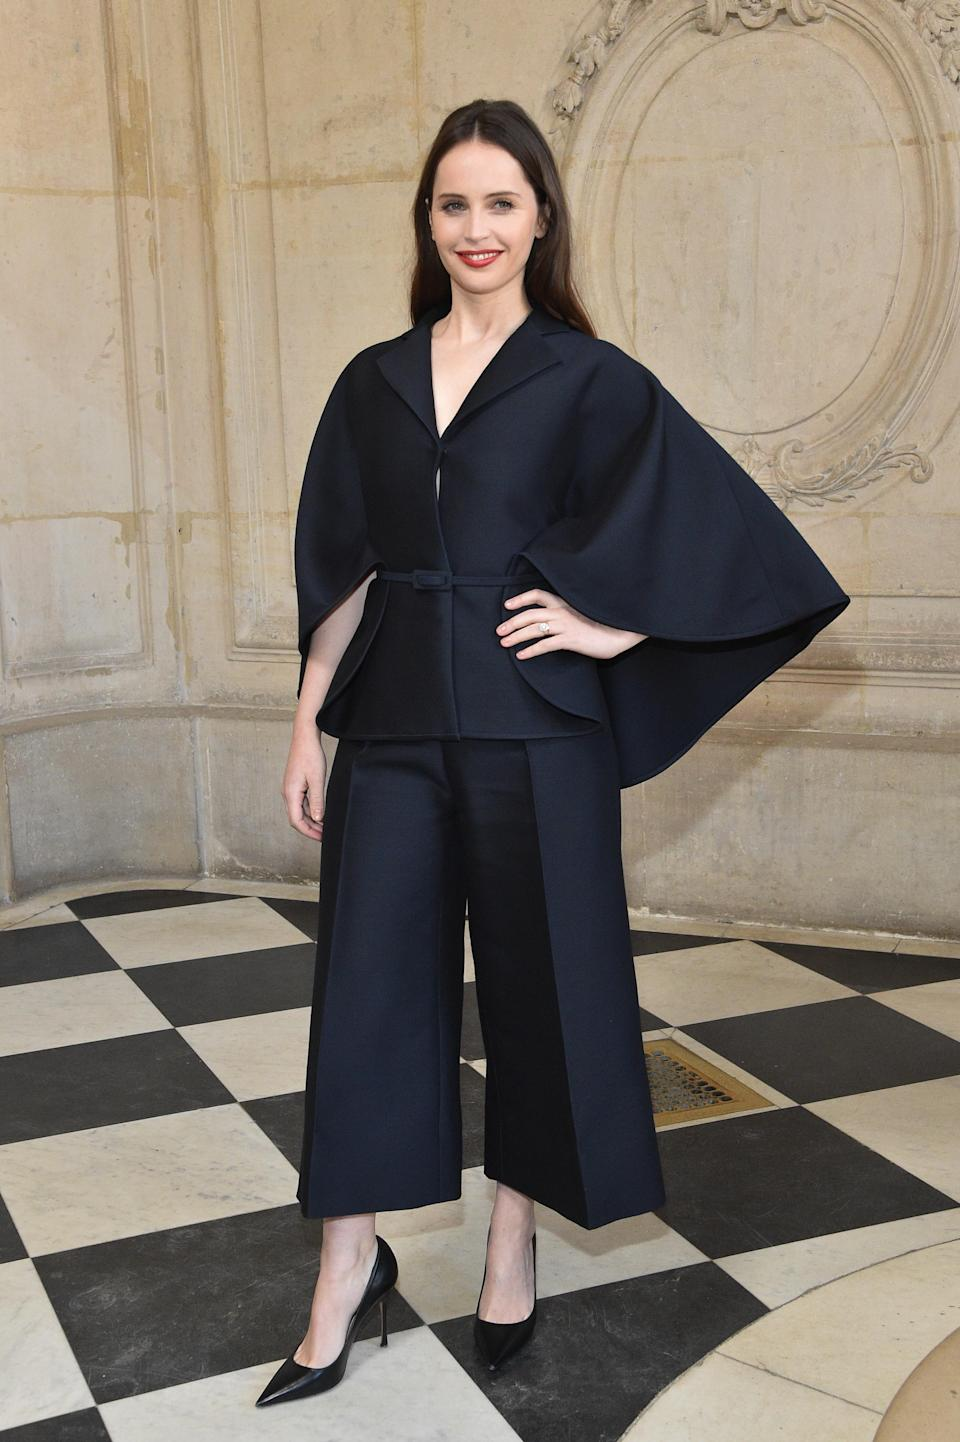 <p>On January 21, actress Felicity Jones gave us a lesson in chic tailoring courtesy of a super-sleeved blazer and wide-leg trousers. A lick of red lipstick and minimal courts finished the FROW ensemble. <em>[Photo: Getty]</em> </p>